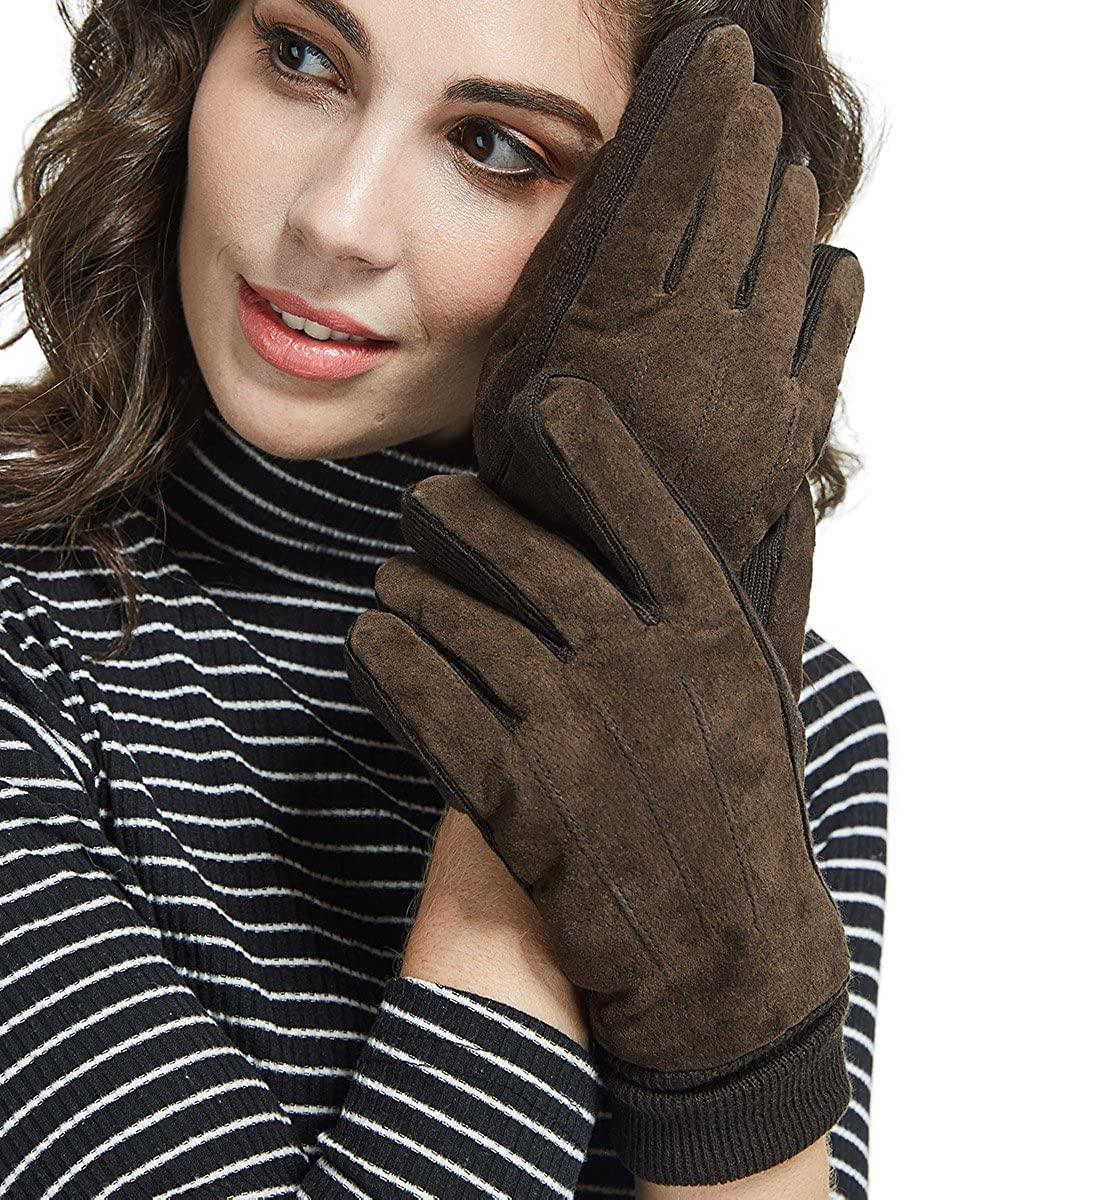 LETHMIK Mens&Womens Black Winter Gloves Suede Leather Knit Cuff with Thick Fleece Lining women leather gloves brown